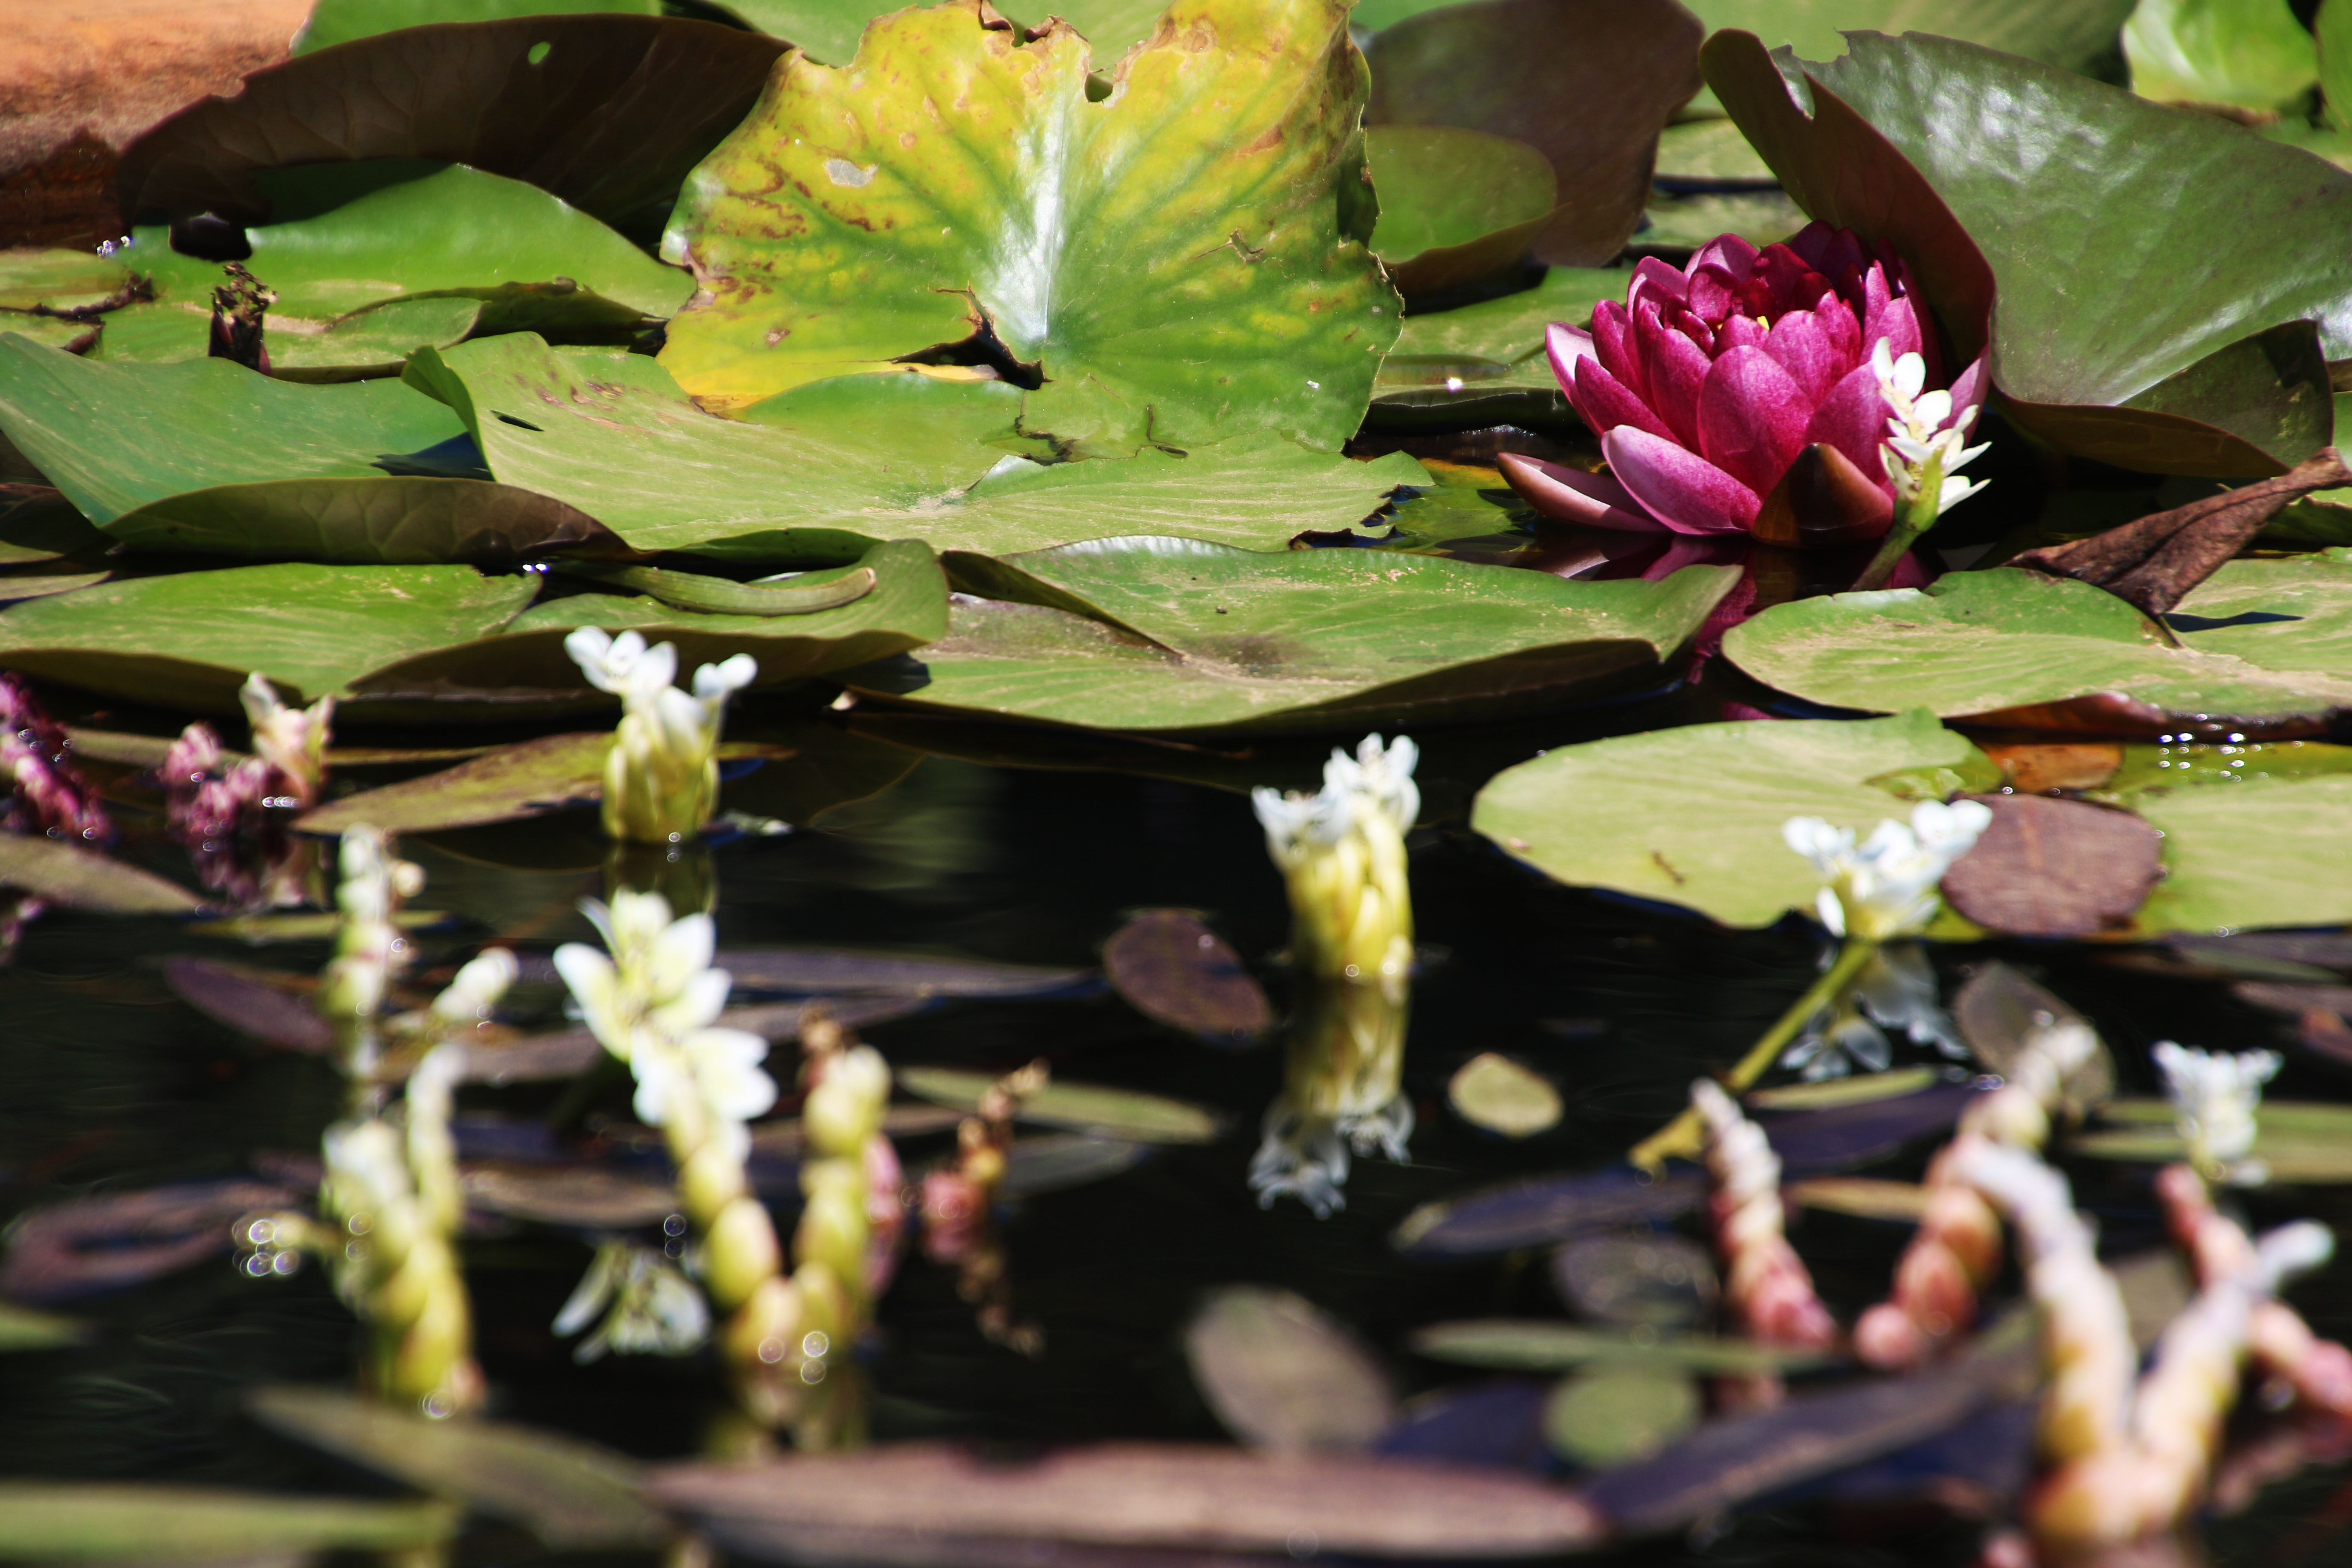 Water lilies blooming in a pond photo